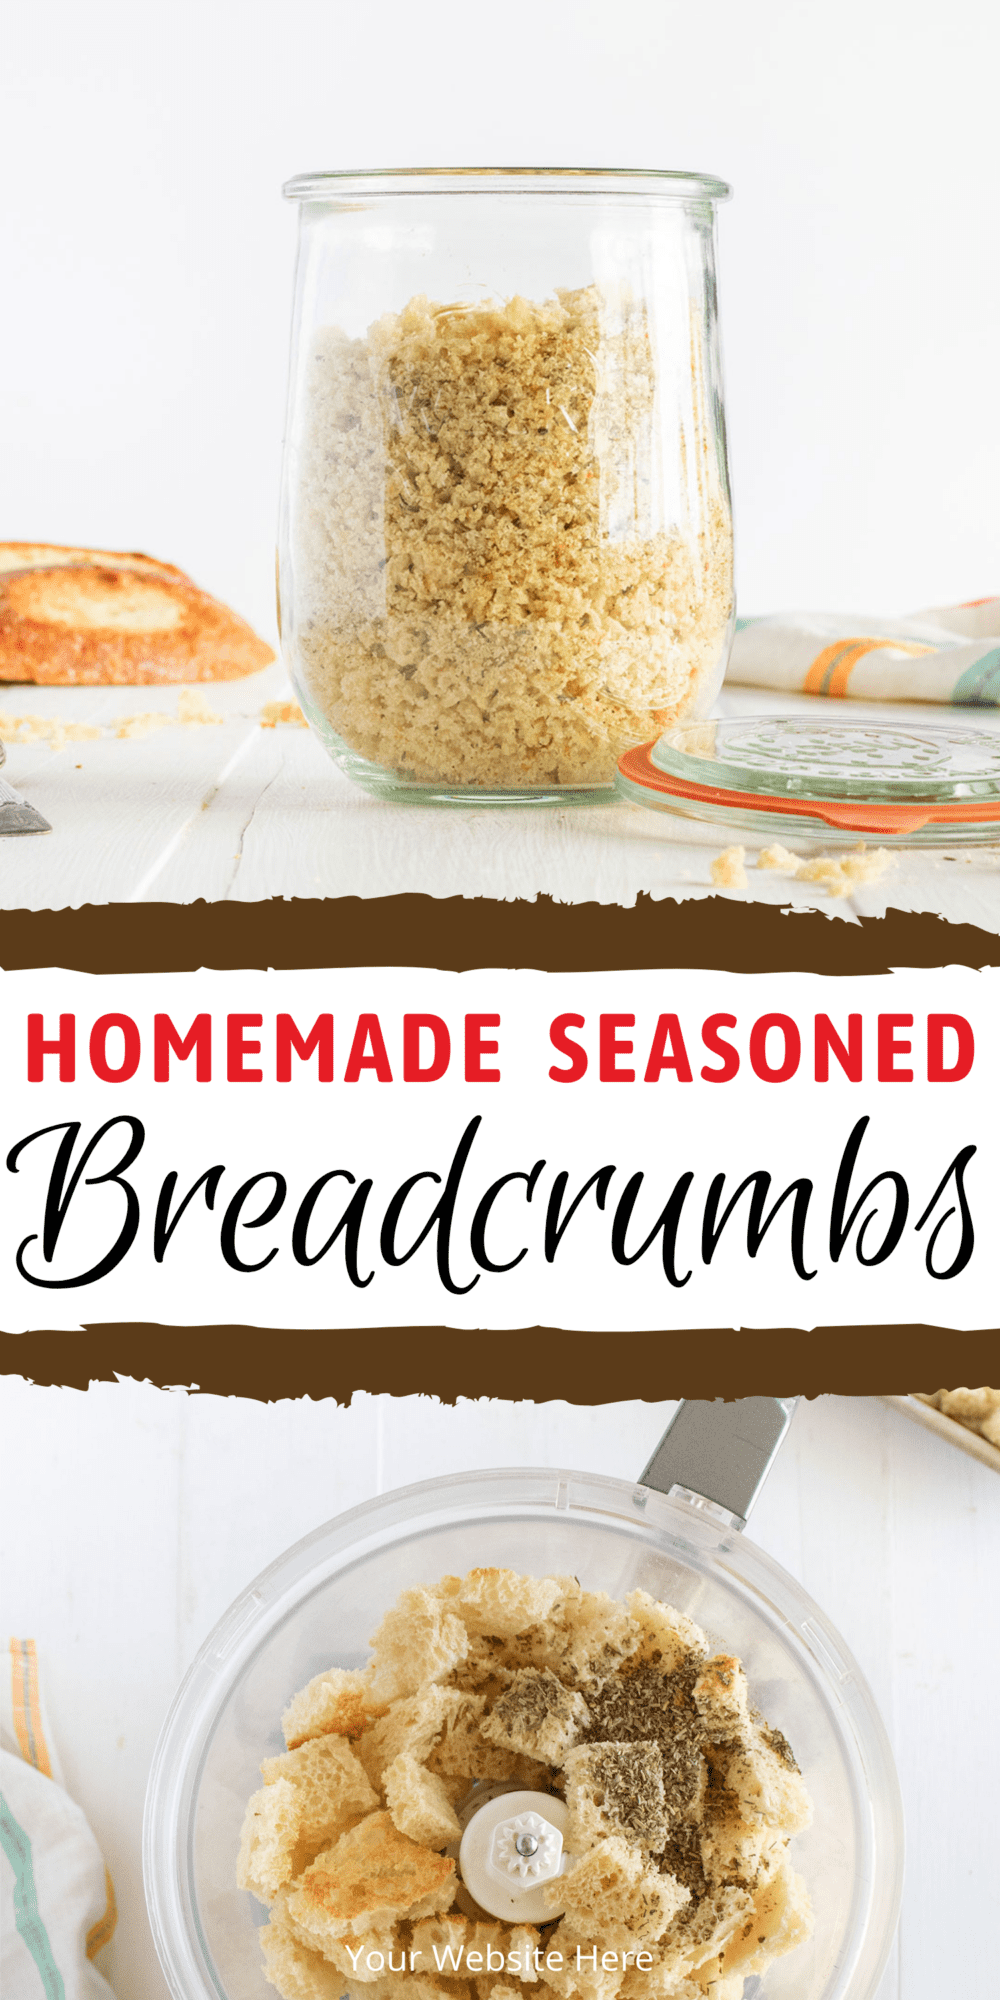 Quick and easy homemade breadcrumbs. You can keep them plain or you can use seasonings to jazz up any recipe!